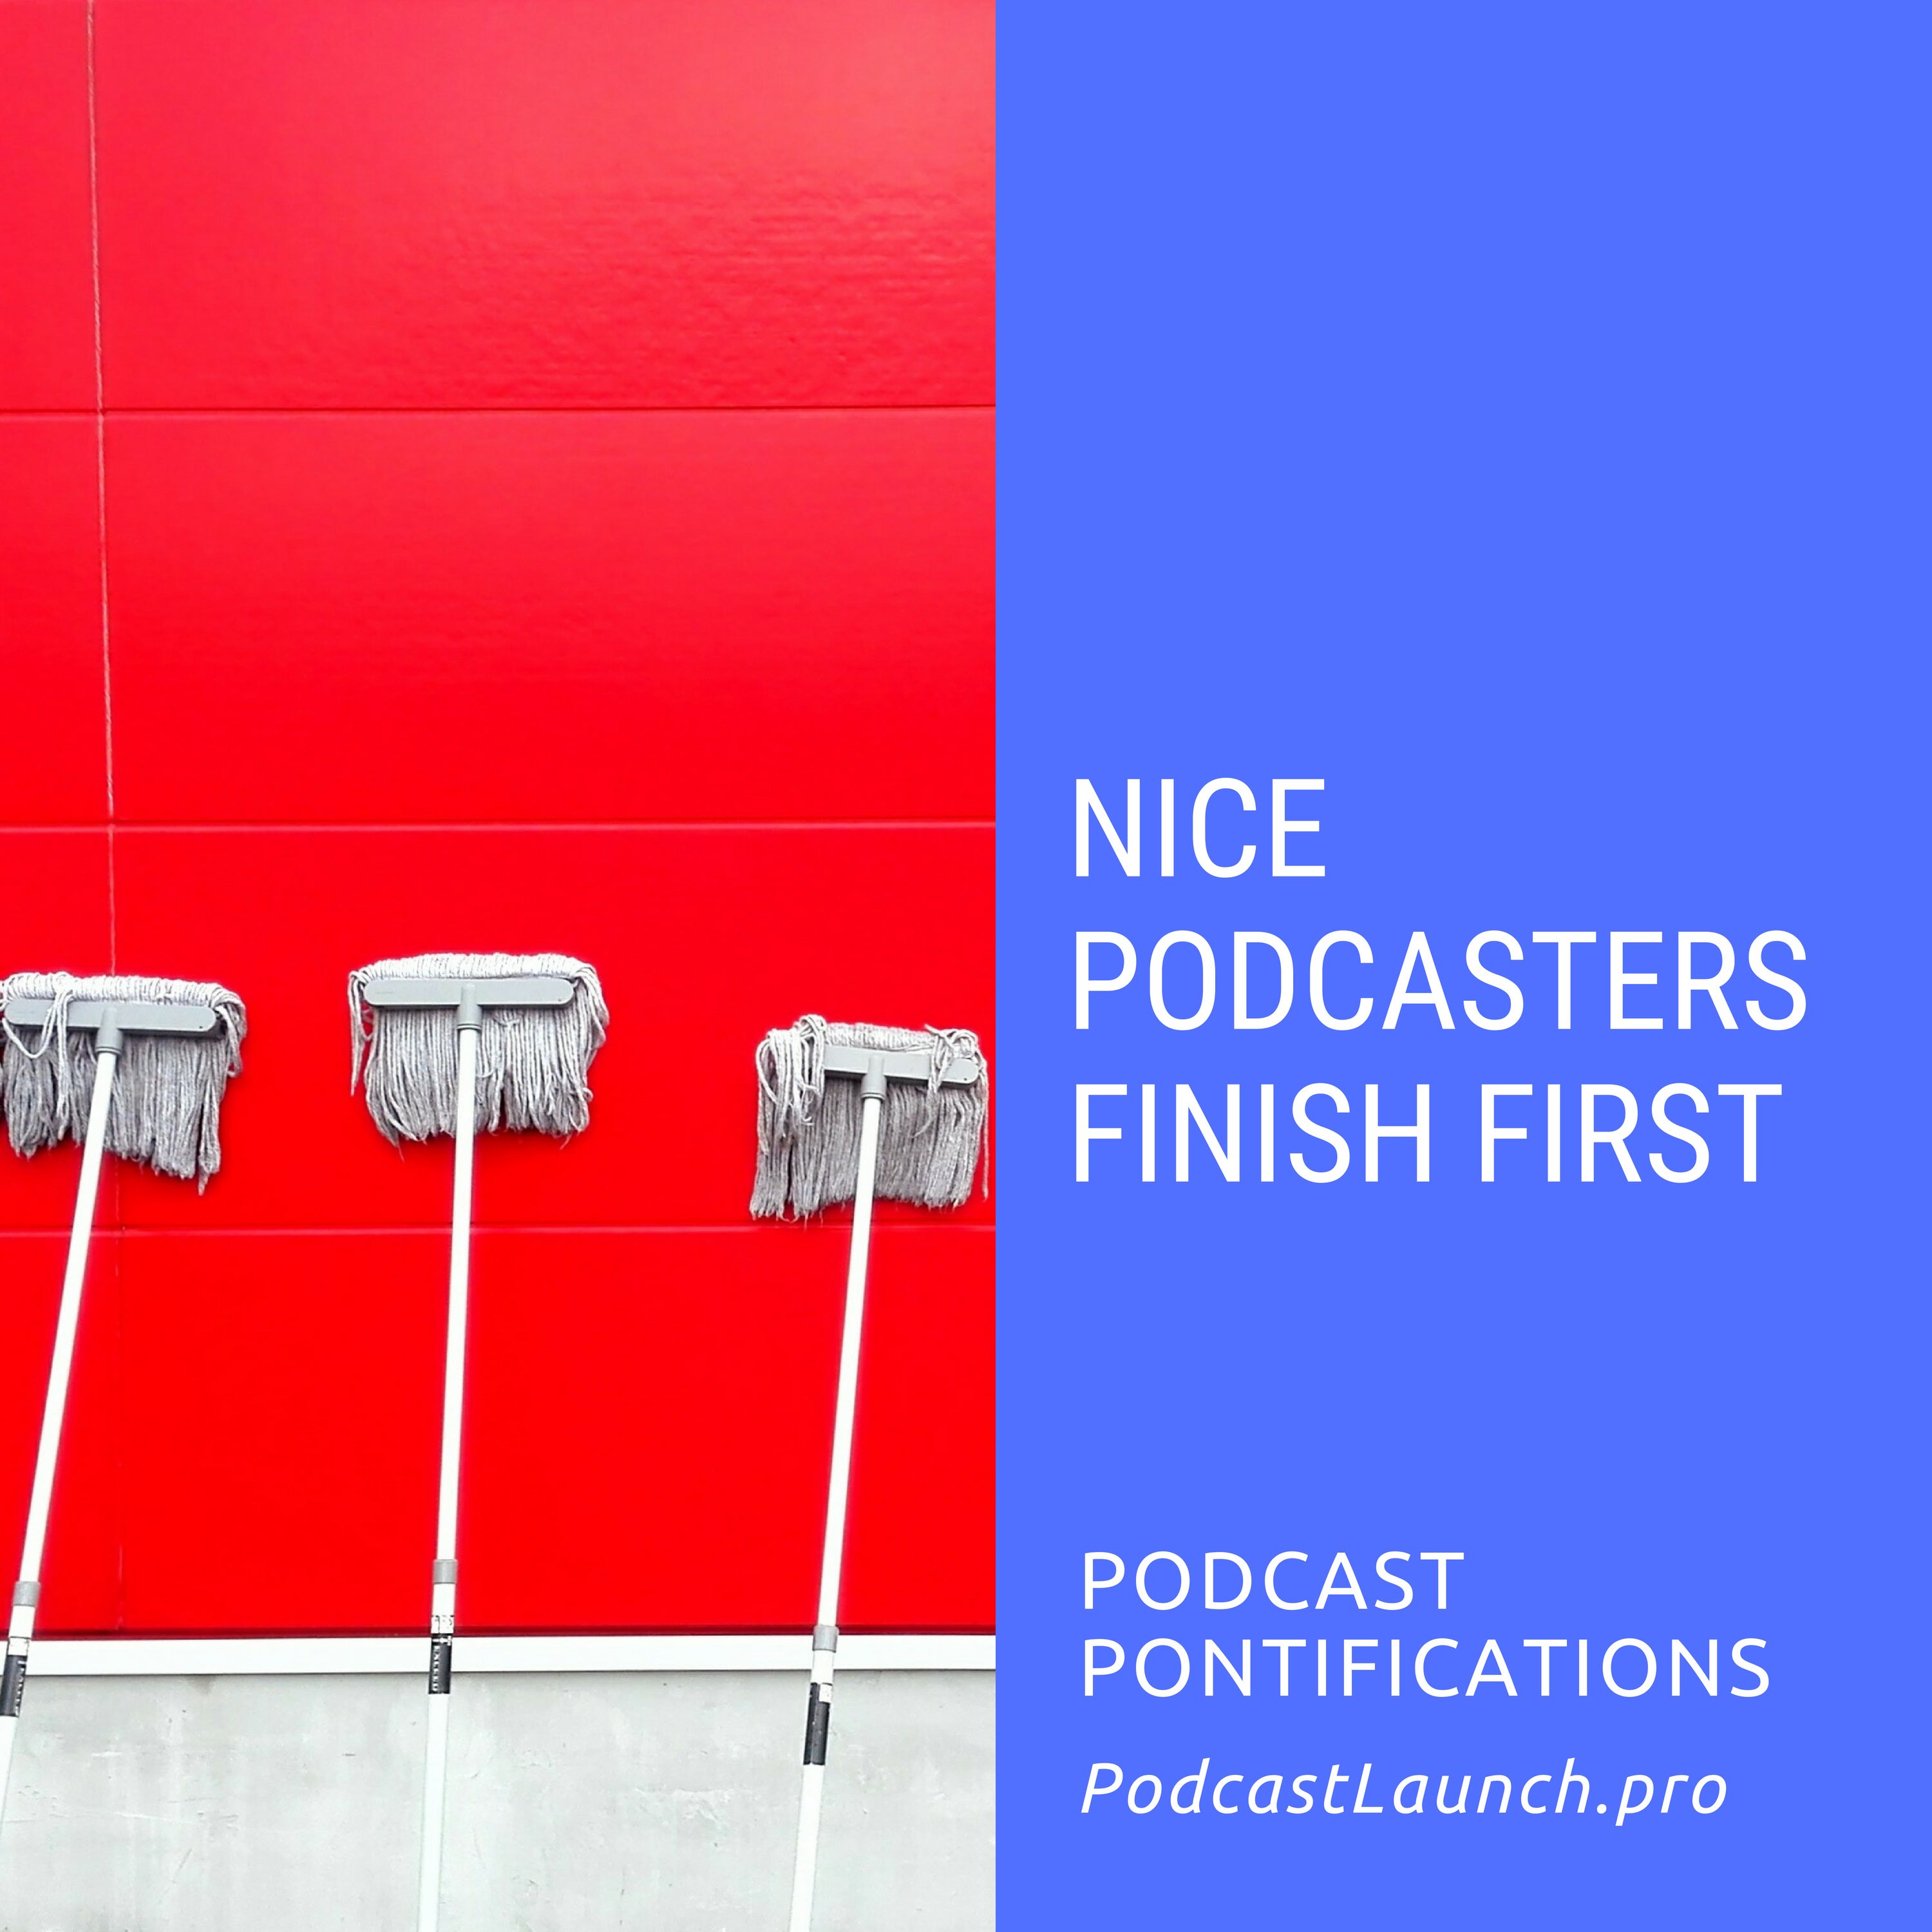 Nice Podcasters Finish First